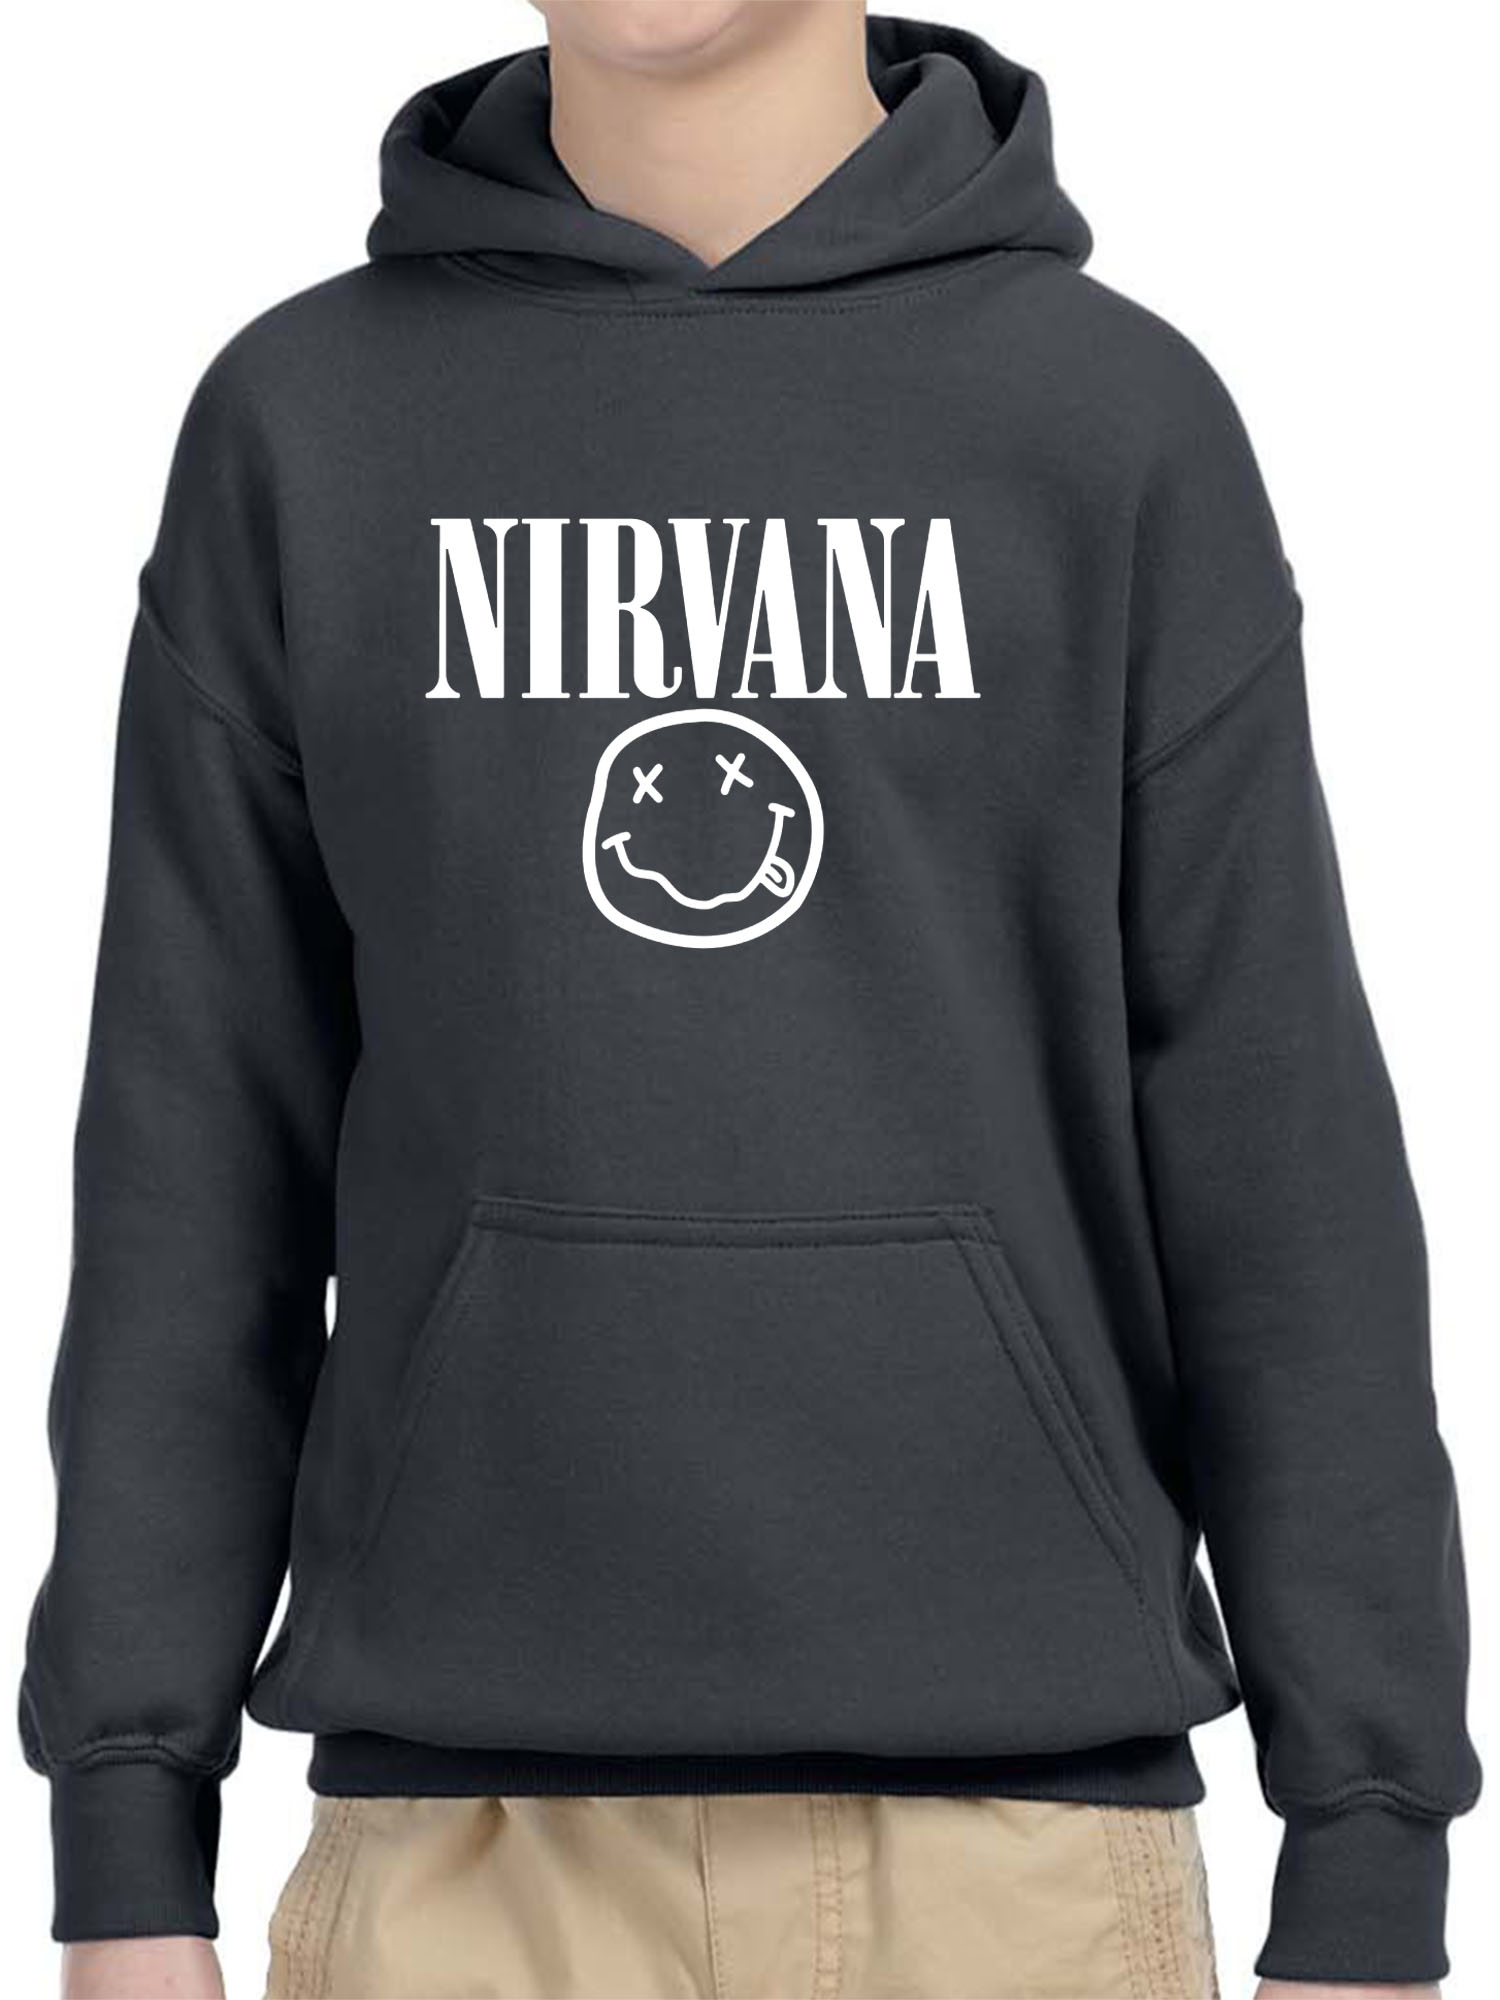 New Way 1330 Youth T-Shirt Nirvana Smiley Whiteout